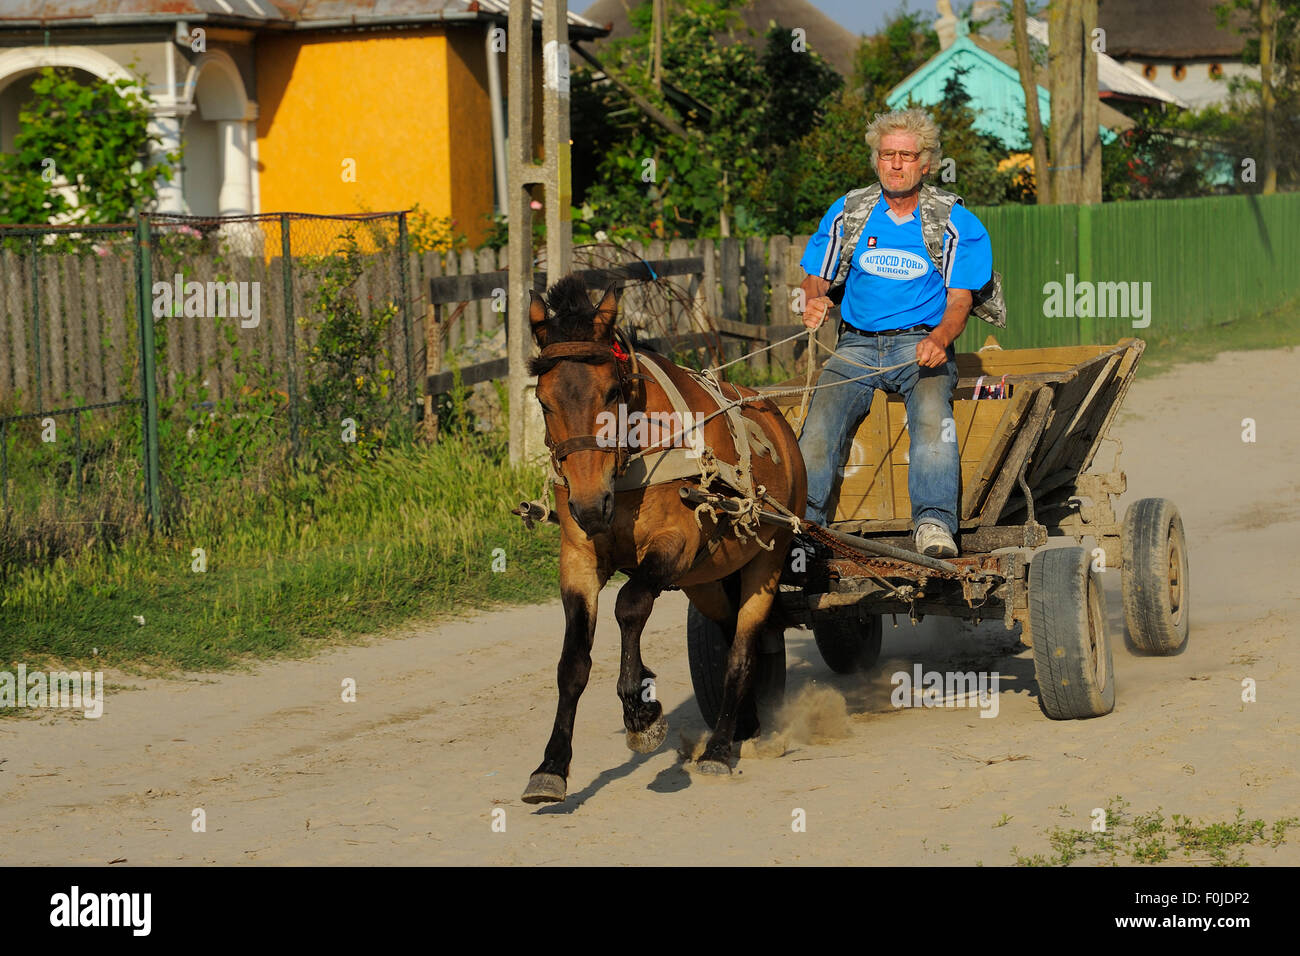 Traditional means of transport, horse and cart, Sfinthu Gheorghe, Danube delta rewilding area, Romania June 2012 - Stock Image